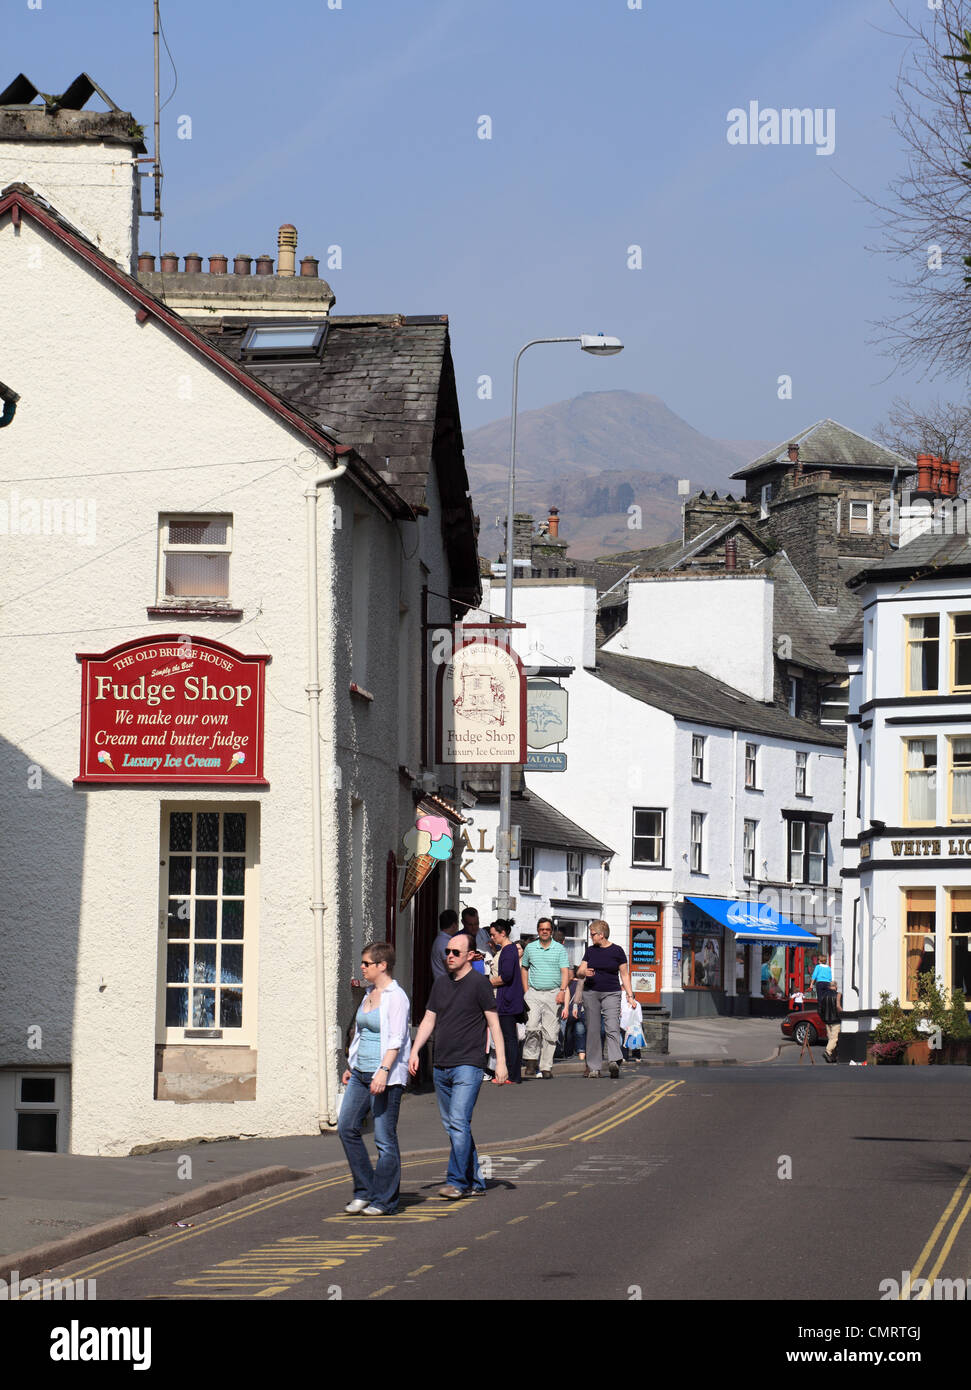 People walking down Lake Road past the Fudge Shop in Ambleside, Cumbria, NW England, UK - Stock Image